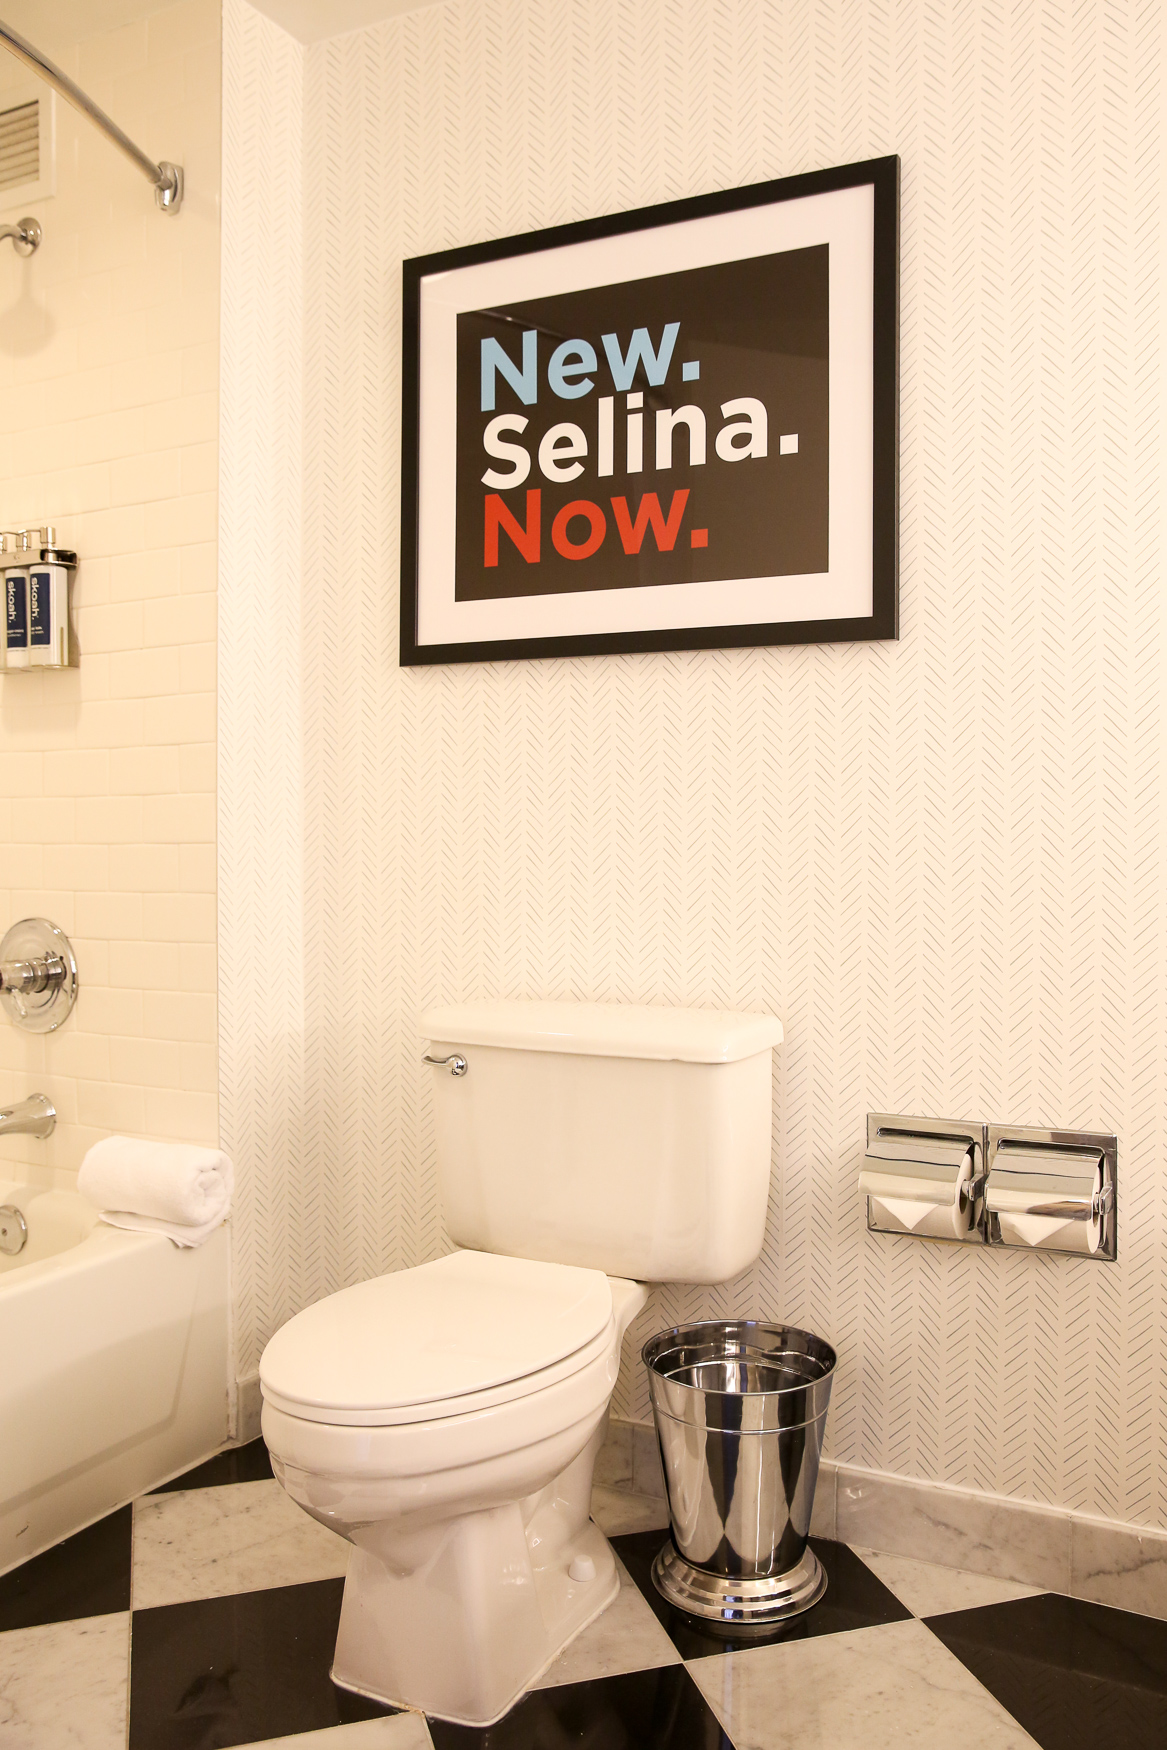 HBO's wildly funny and successful show 'Veep' has earned a place in many Washingtonians' hearts for its sharp skewering of D.C. politics. Now you can get even closer to fictional president Selina Meyer, played byJulia Louis-Dreyfus, at The Hamilton Hotel's new 'Veep' themed suite. The suite is available by reservation and it's a replica of Meyer's D.C. brownstone - in fact, many of the decorations were used on the show and were provided by HBO. If you're not planning on staying the night, anyone can pop up to the 12th floor and take a tour of a replica of Meyer's Oval Office. The display will be up through 2020. (Amanda Andrade-Rhoades/DC Refined)